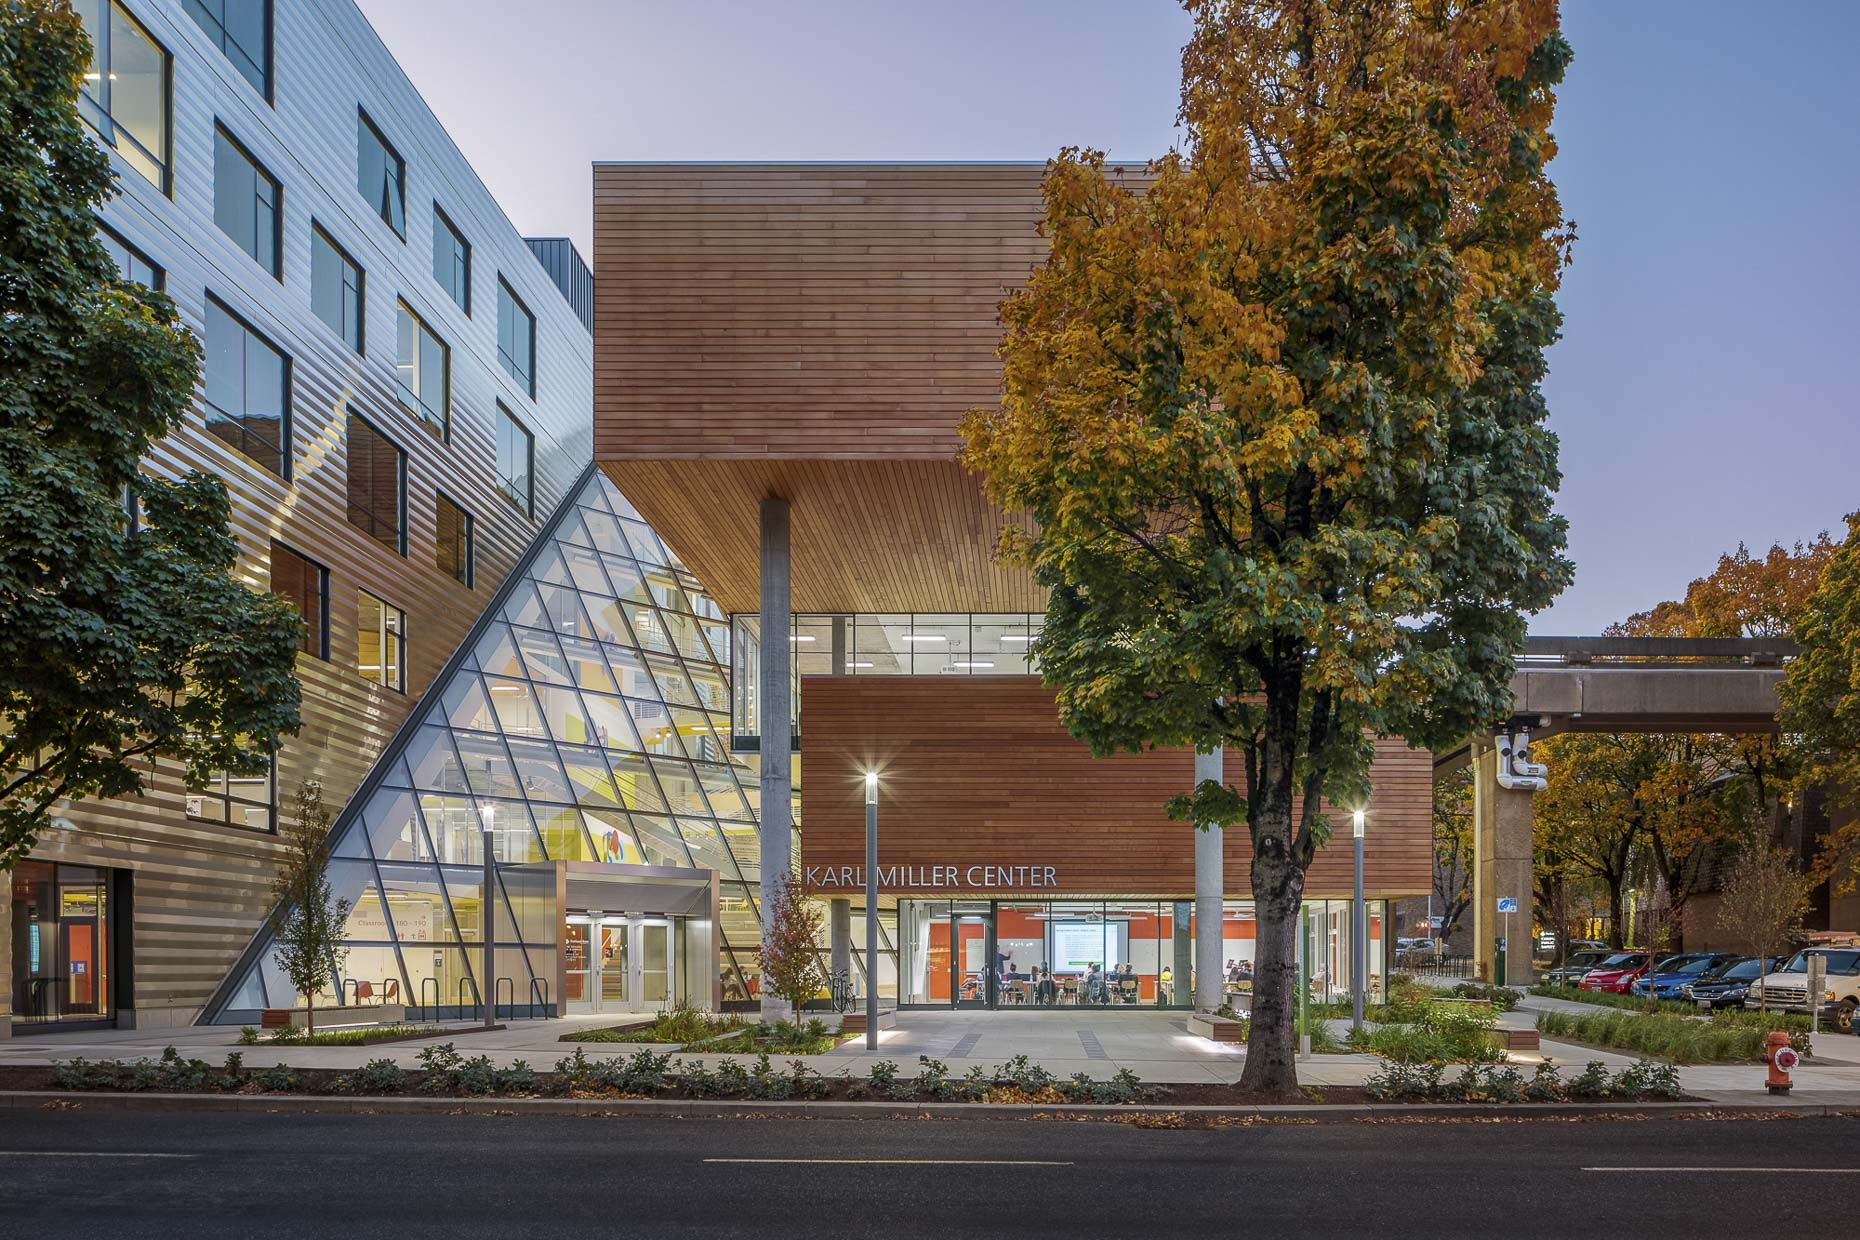 PSU Karl Miller Center by Behnisch Architekten photographed by Brad Feinknopf based in Columbus, Ohio